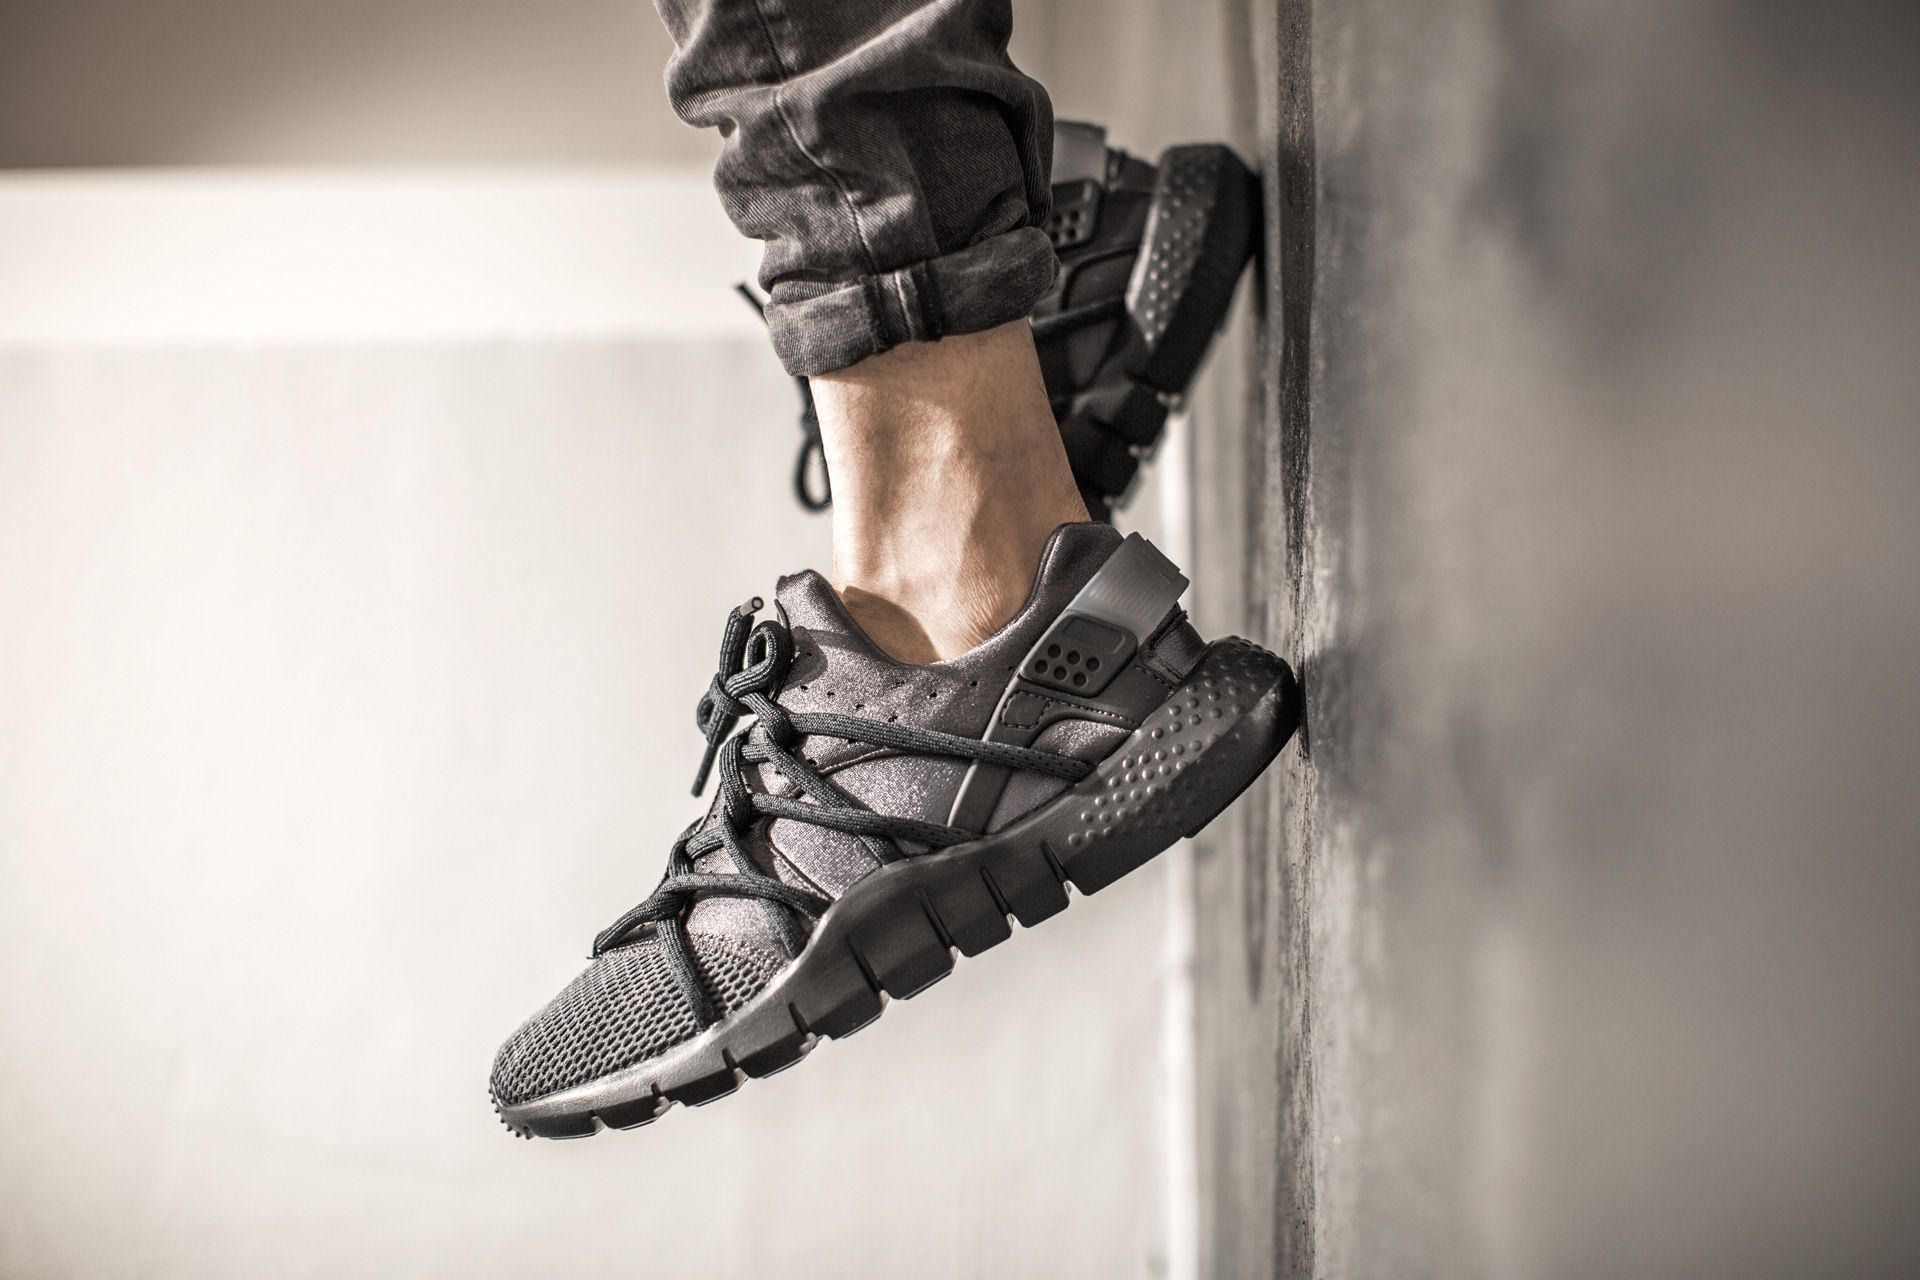 NIKE HUARACHE NM DARK GREY/ANTHRACITE-BLACK available at www.tint ...